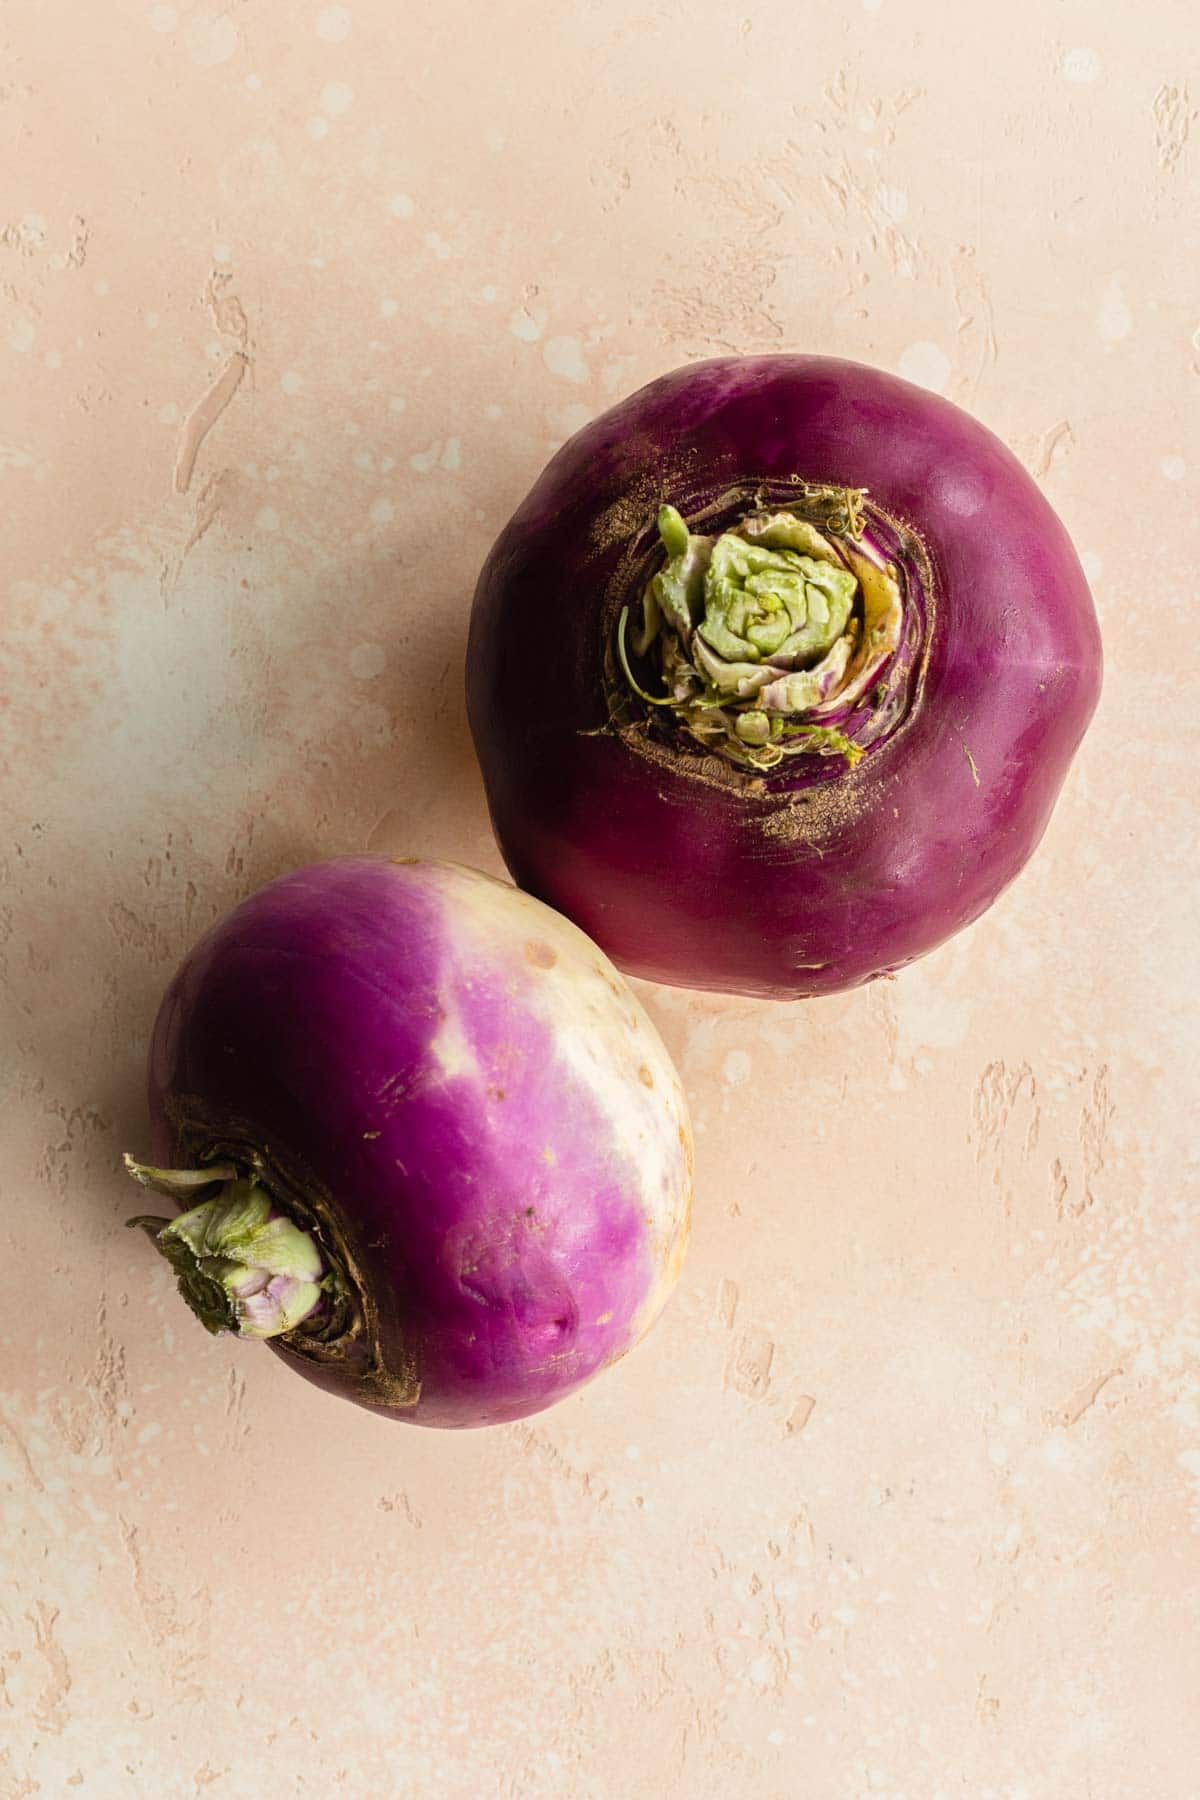 Two unpeeled turnips on a pink surface.